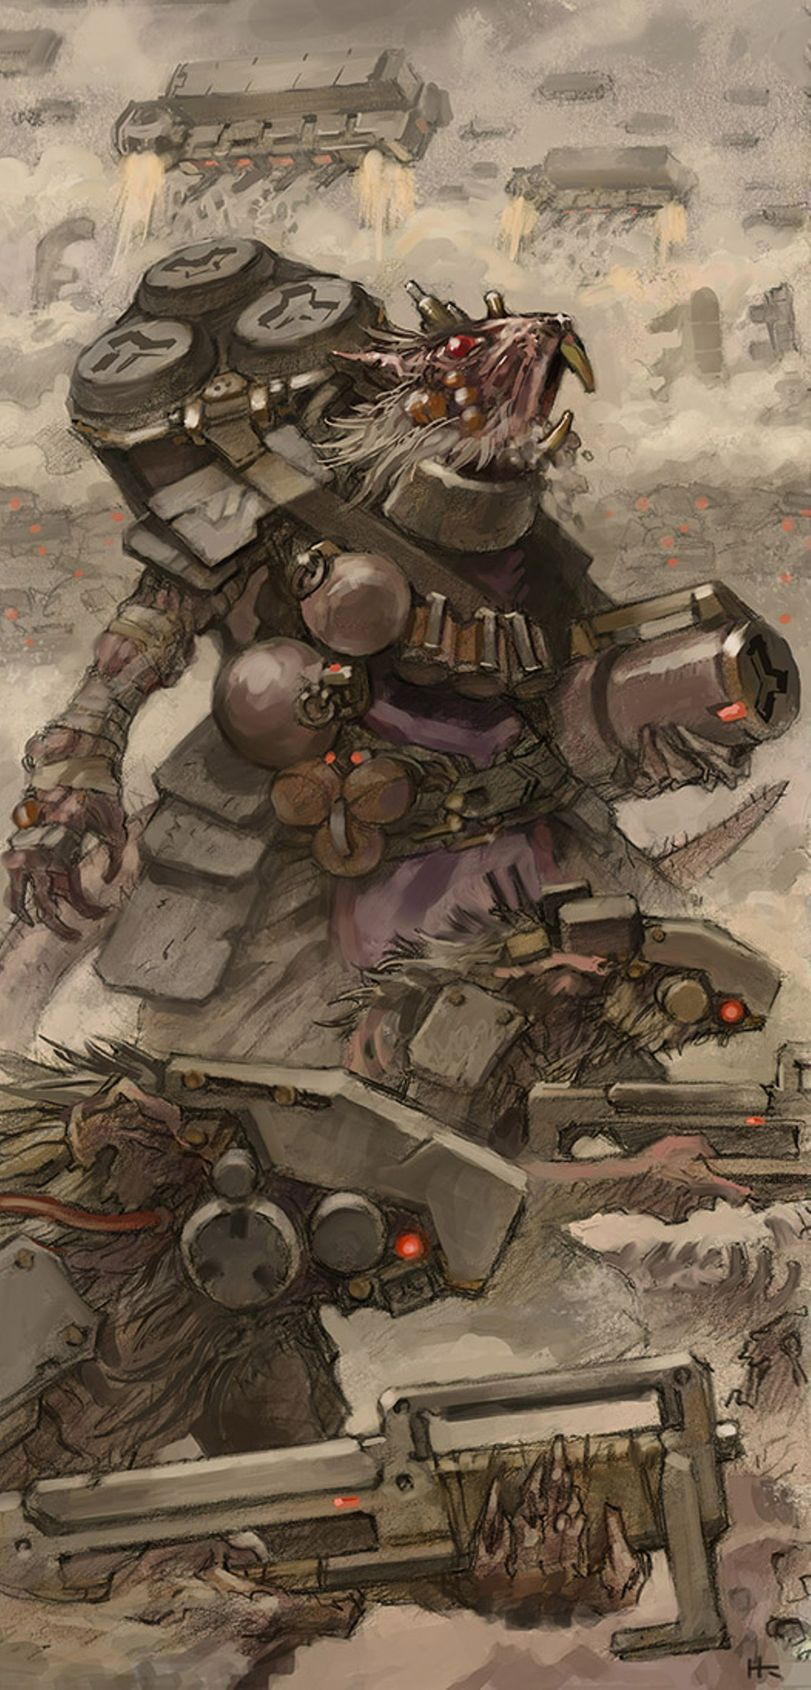 Skaven Warhammer Fantasy Warhammer Fb Fendomy Crossover